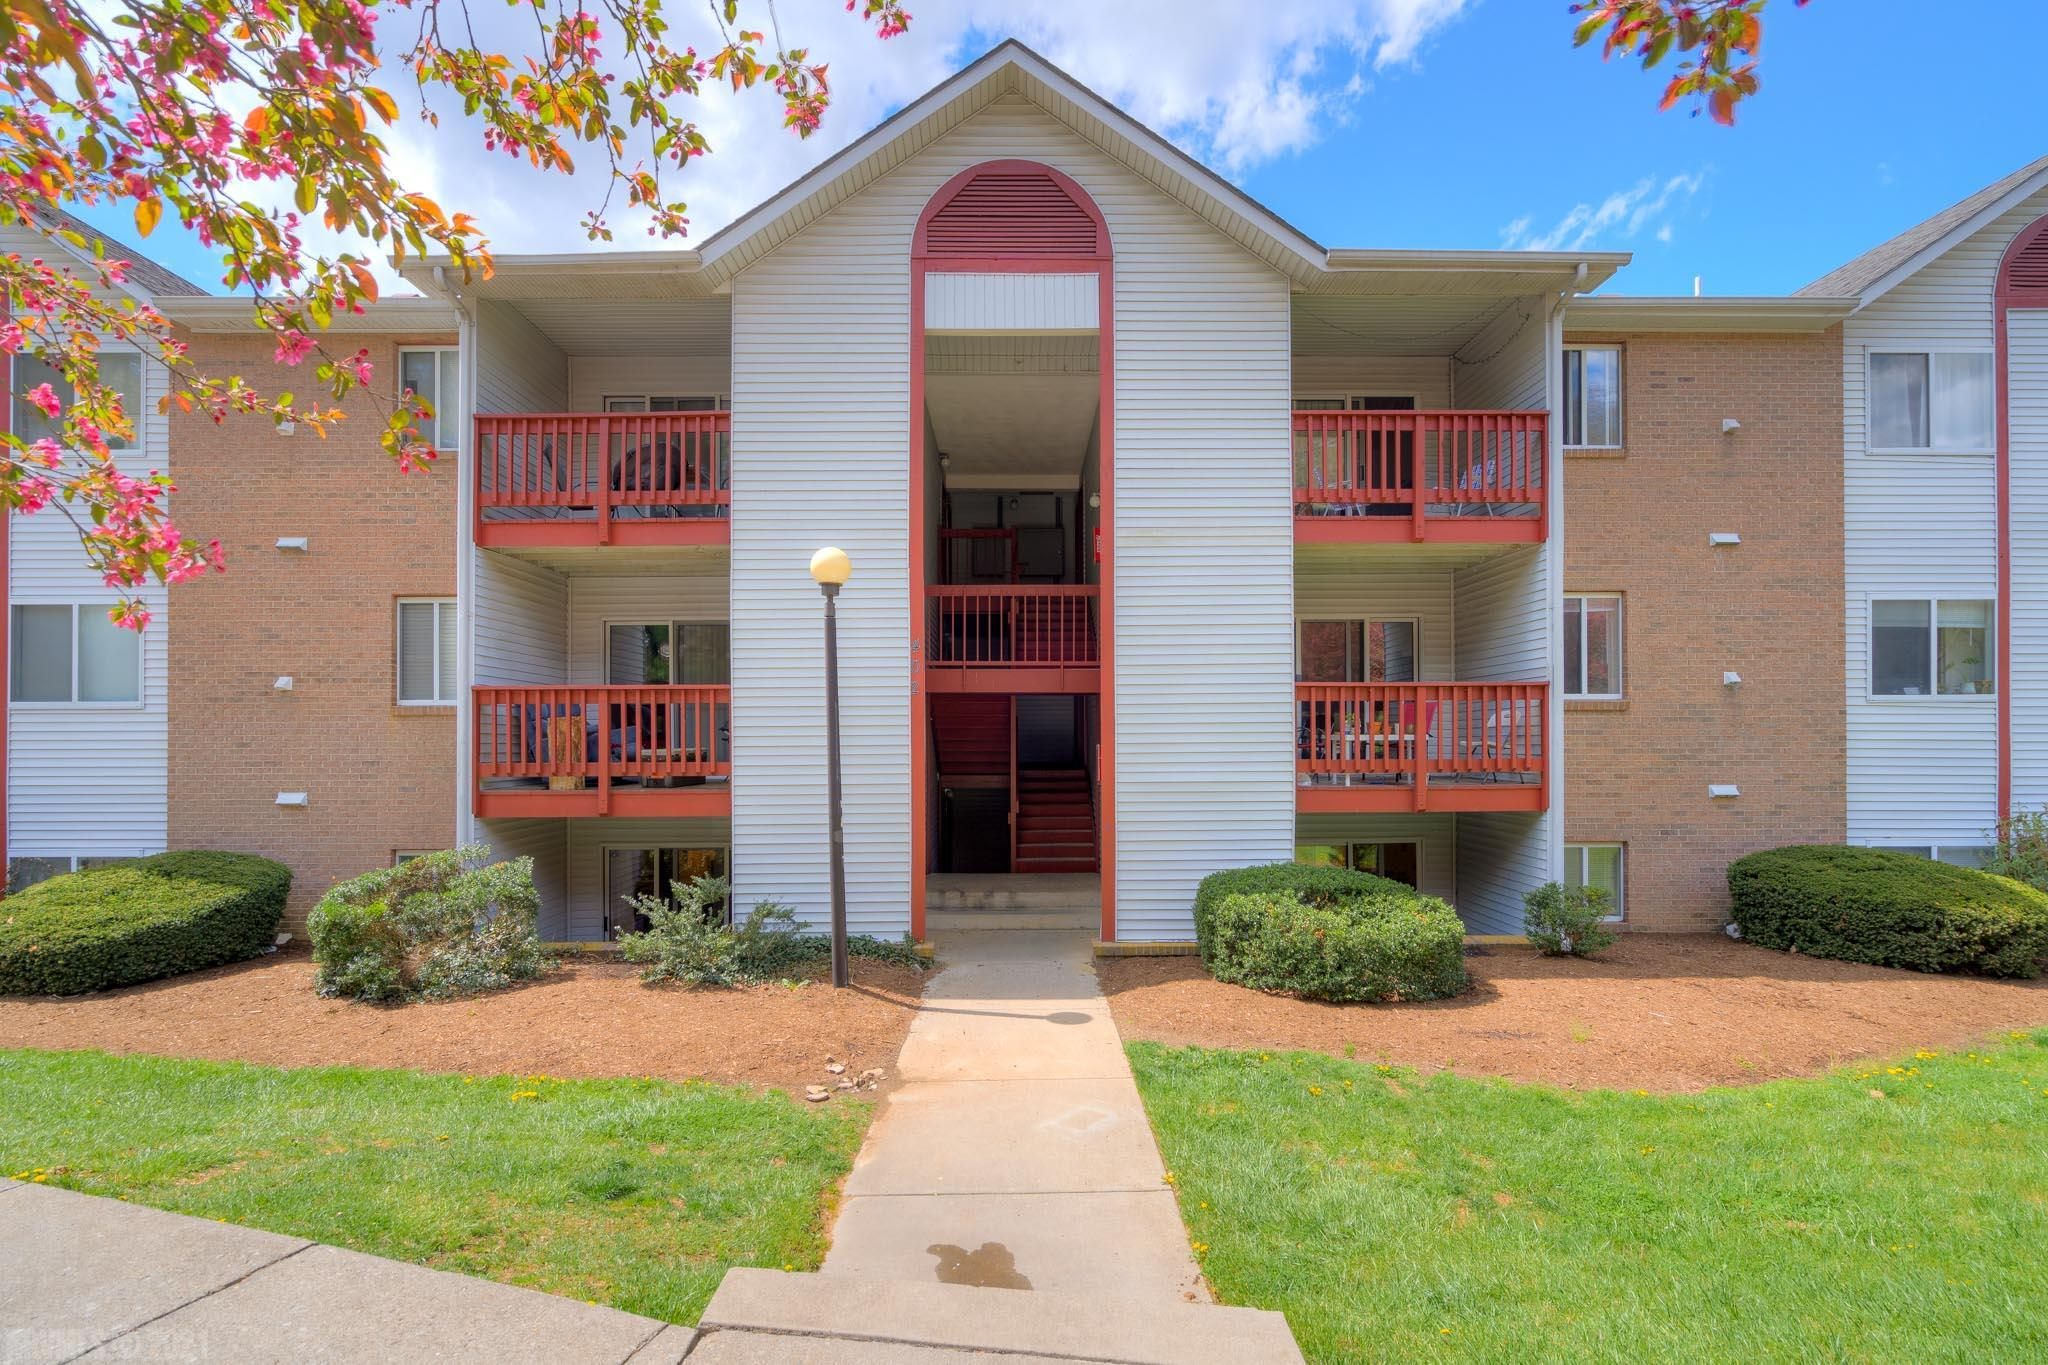 Come see this 3-Bedroom, 2-bath condo in Downtown Blacksburg! Walking distance to Virginia Tech and just 2 blocks from the BT bus stop. Newer stainless steel appliances in the kitchen and stacking washer/dryer set conveys.  The open living and dining rooms and hallway have tile floors and sliding doors open to the outside patio.  Water heater and HVAC are well-maintained. Current lease ends May 31, 2021 and will be ready for new owner/tenants.